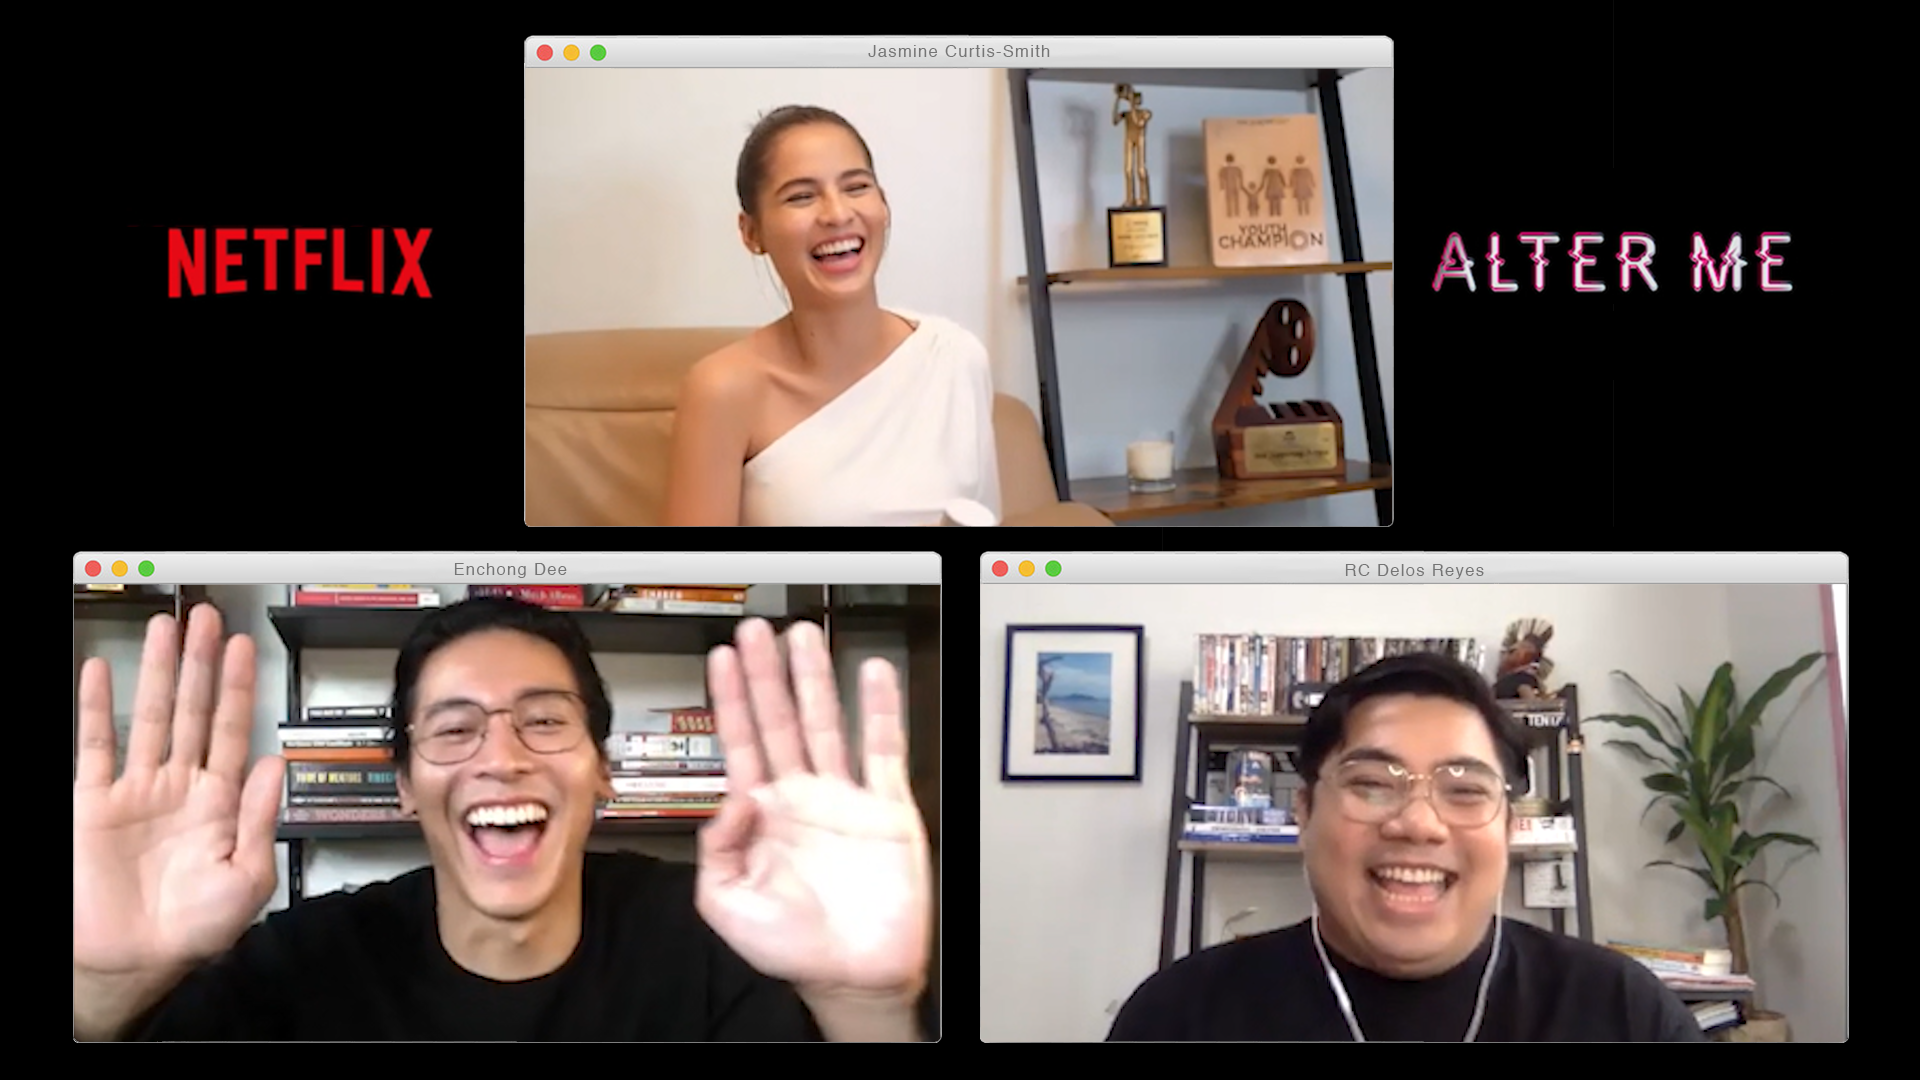 Director RC Delos Reyes, Jasmine Curtis-Smith, and Enchong Dee on Alter Me